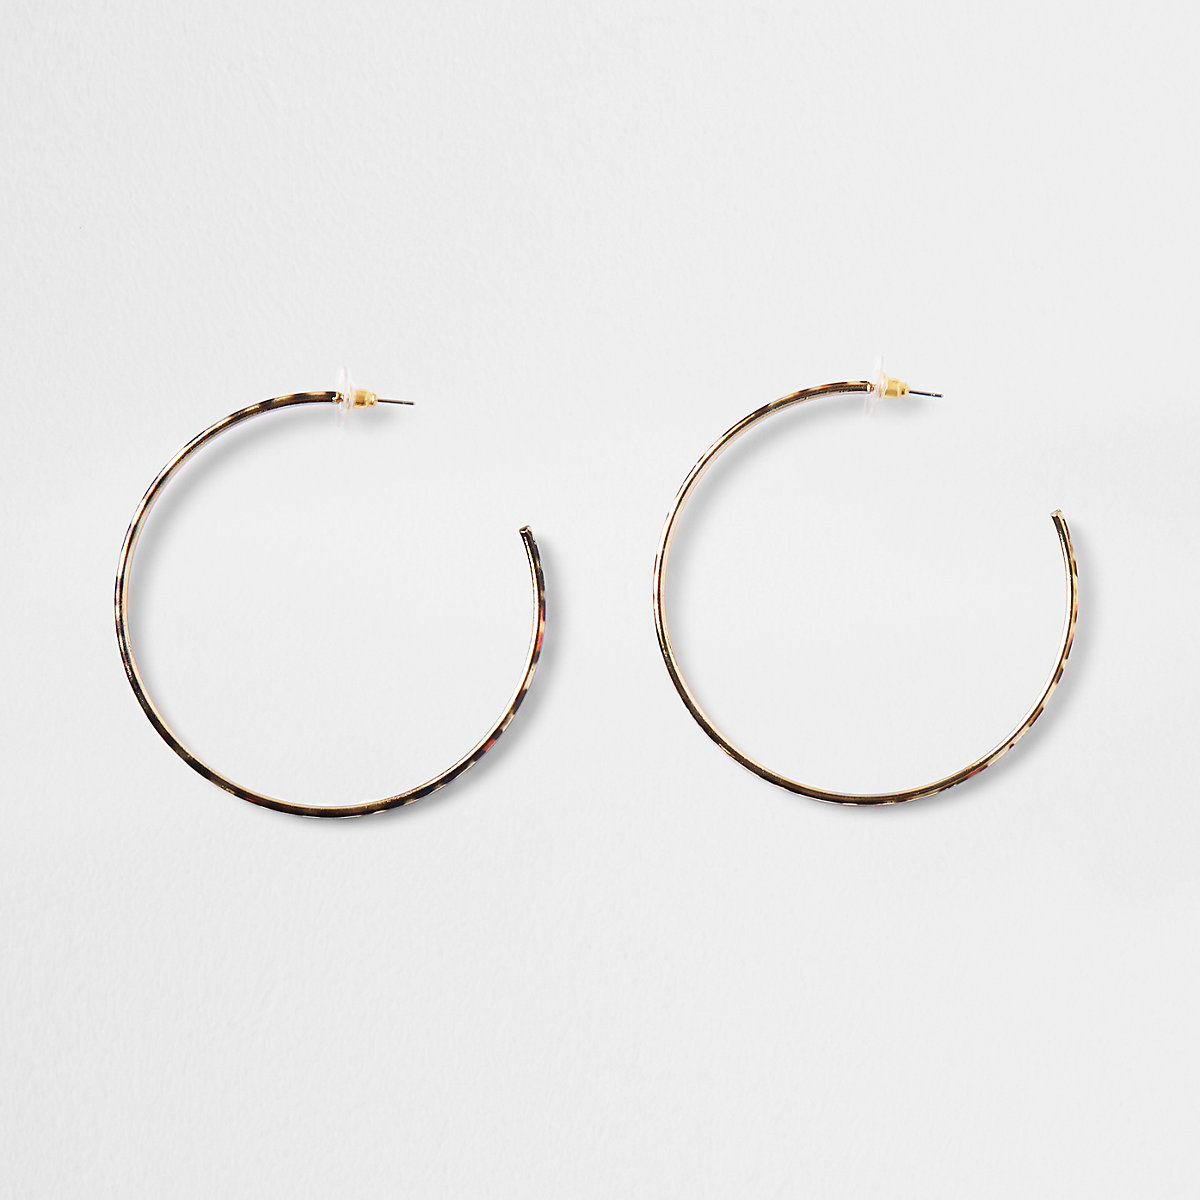 Gold color leopard print hoop earrings